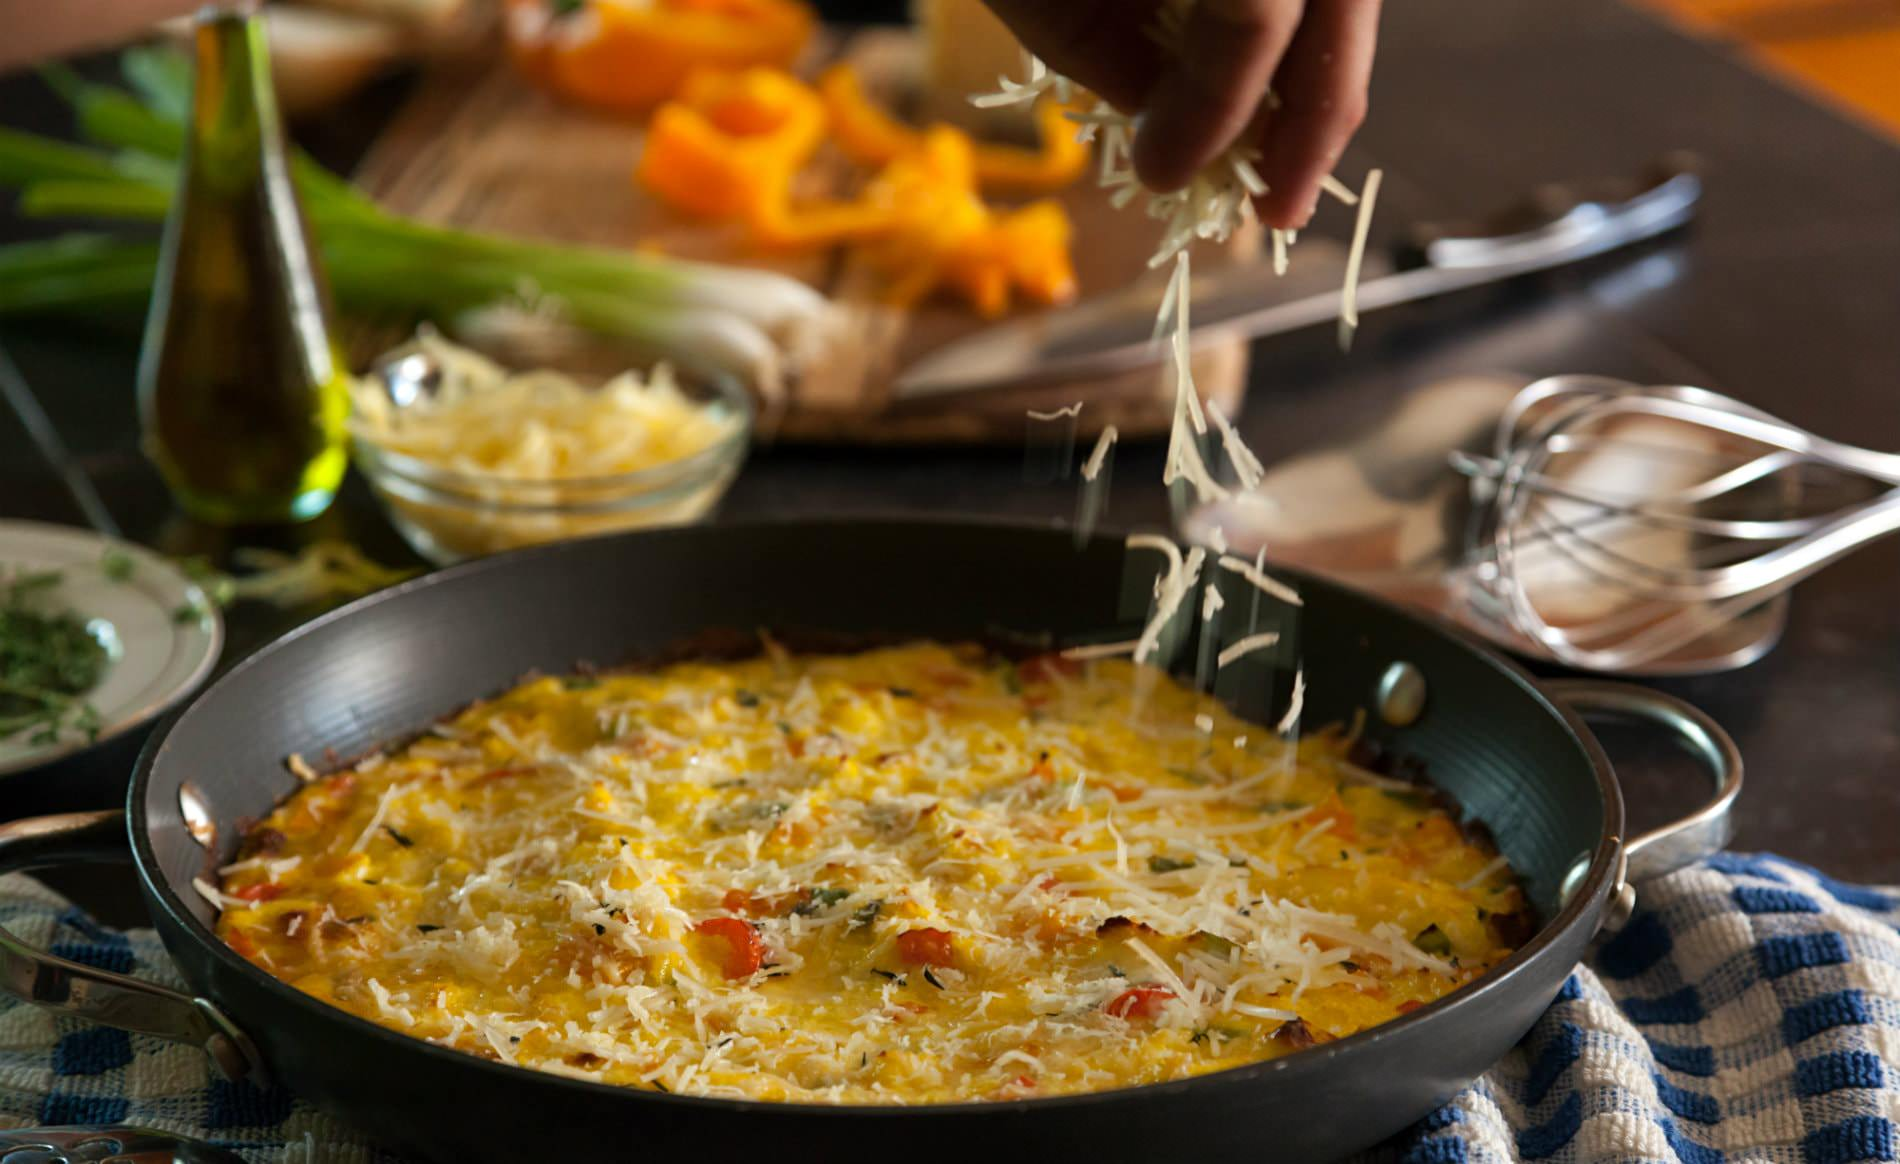 Close up view of a chef cooking an omelet with chopped veggies and herbs and shredded cheese nearby